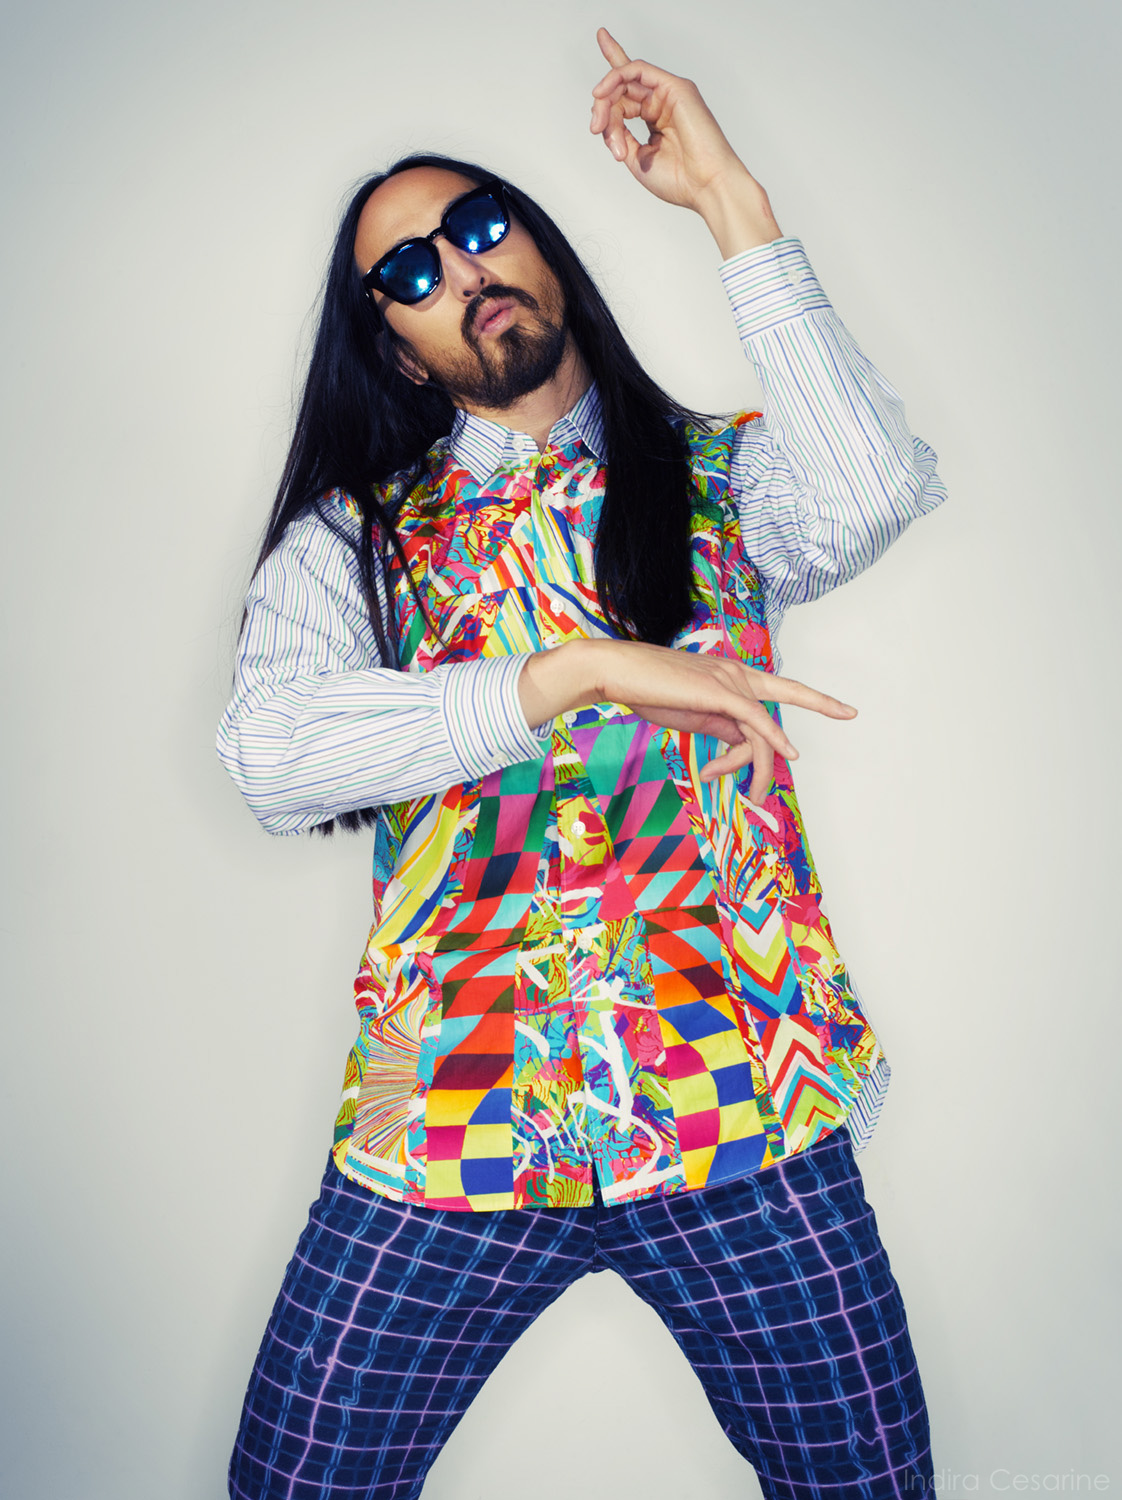 Steve-Aoki-The-Untitled-Magazine-Photography-by-Indira-Cesarine-014.jpg